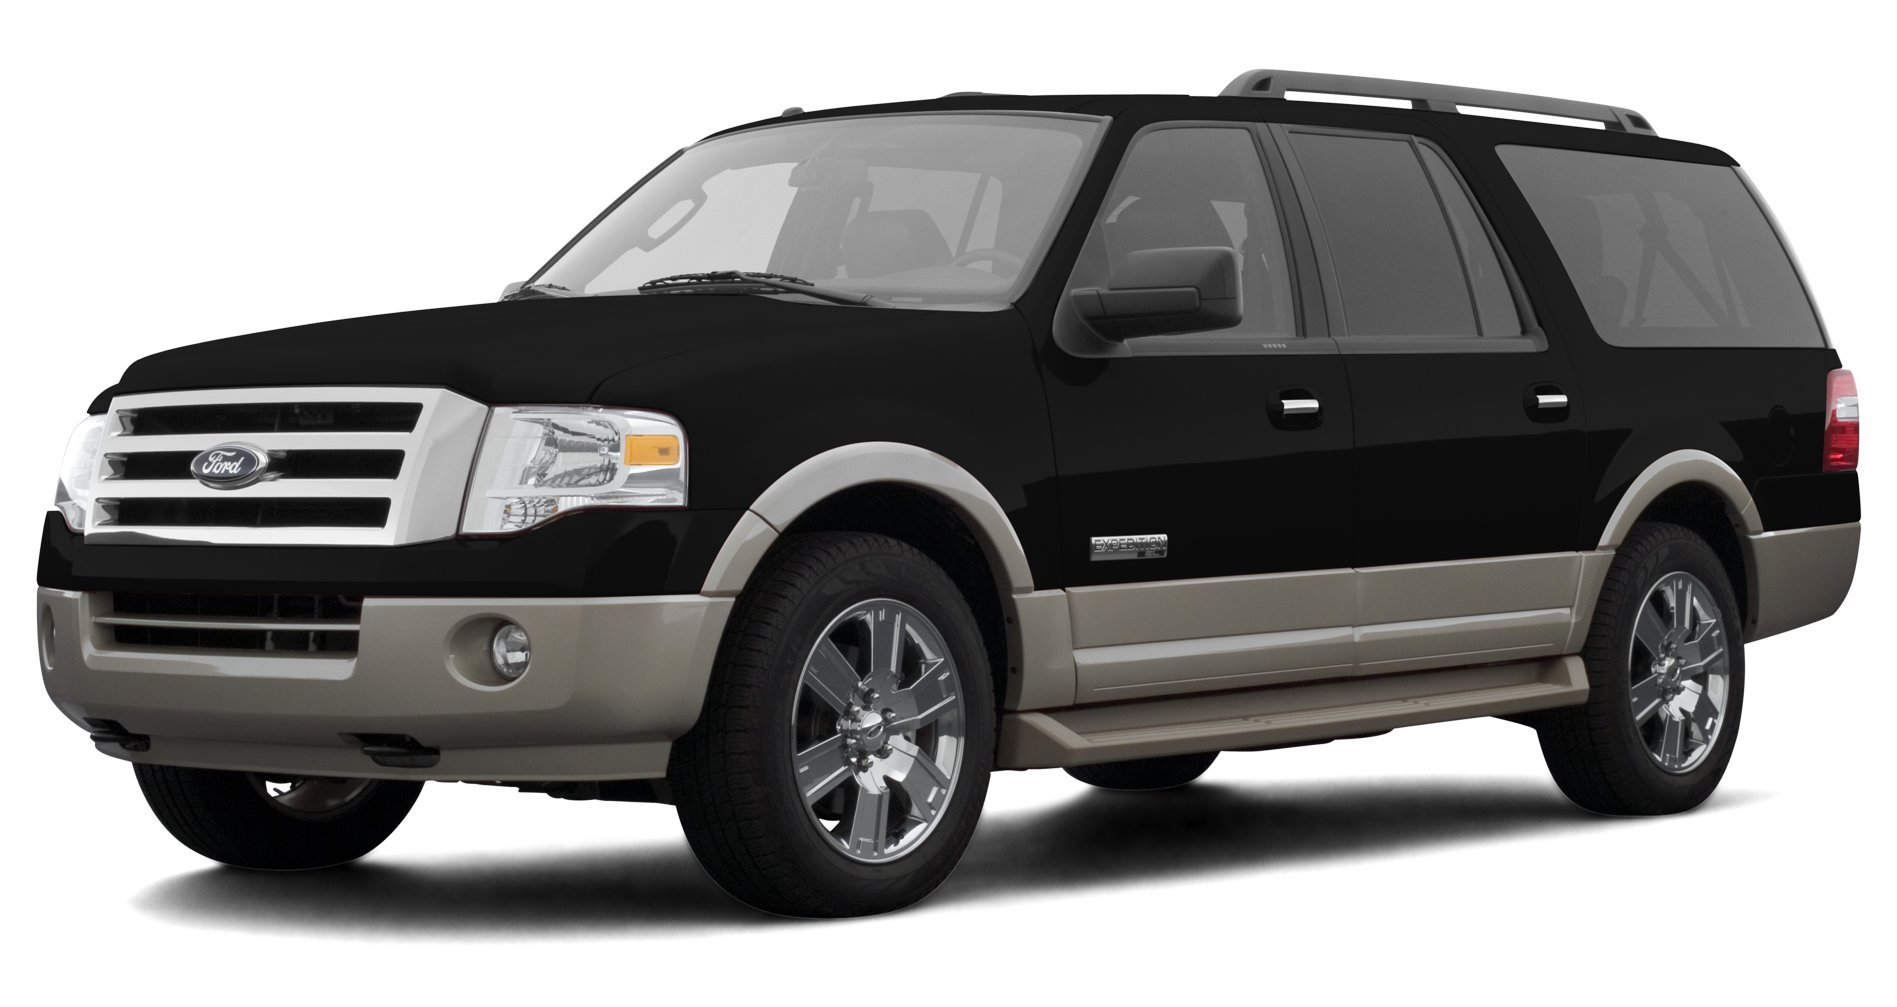 2007 ford expedition reviews images and specs vehicles. Black Bedroom Furniture Sets. Home Design Ideas